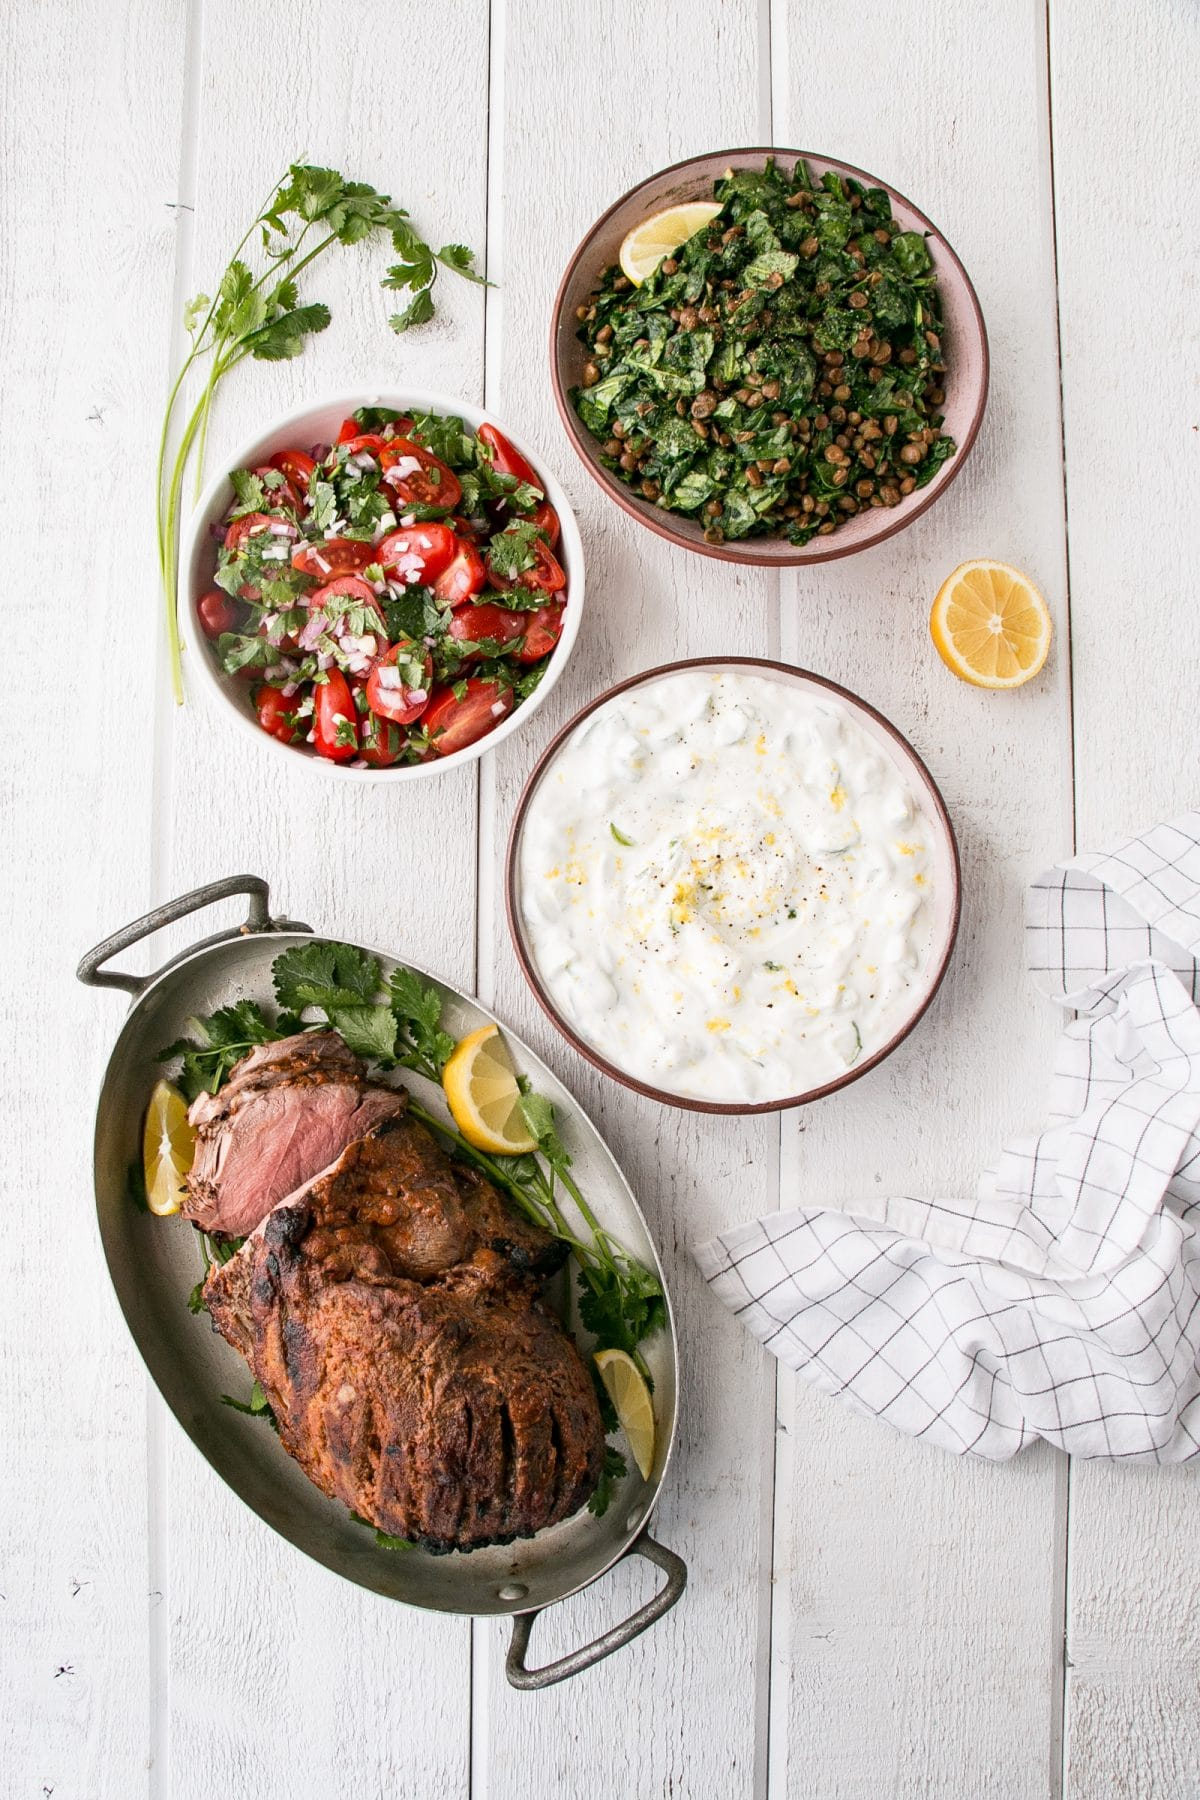 Curry spiced leg of lamb, spinach lentils, tomato salas and lemon yogurt